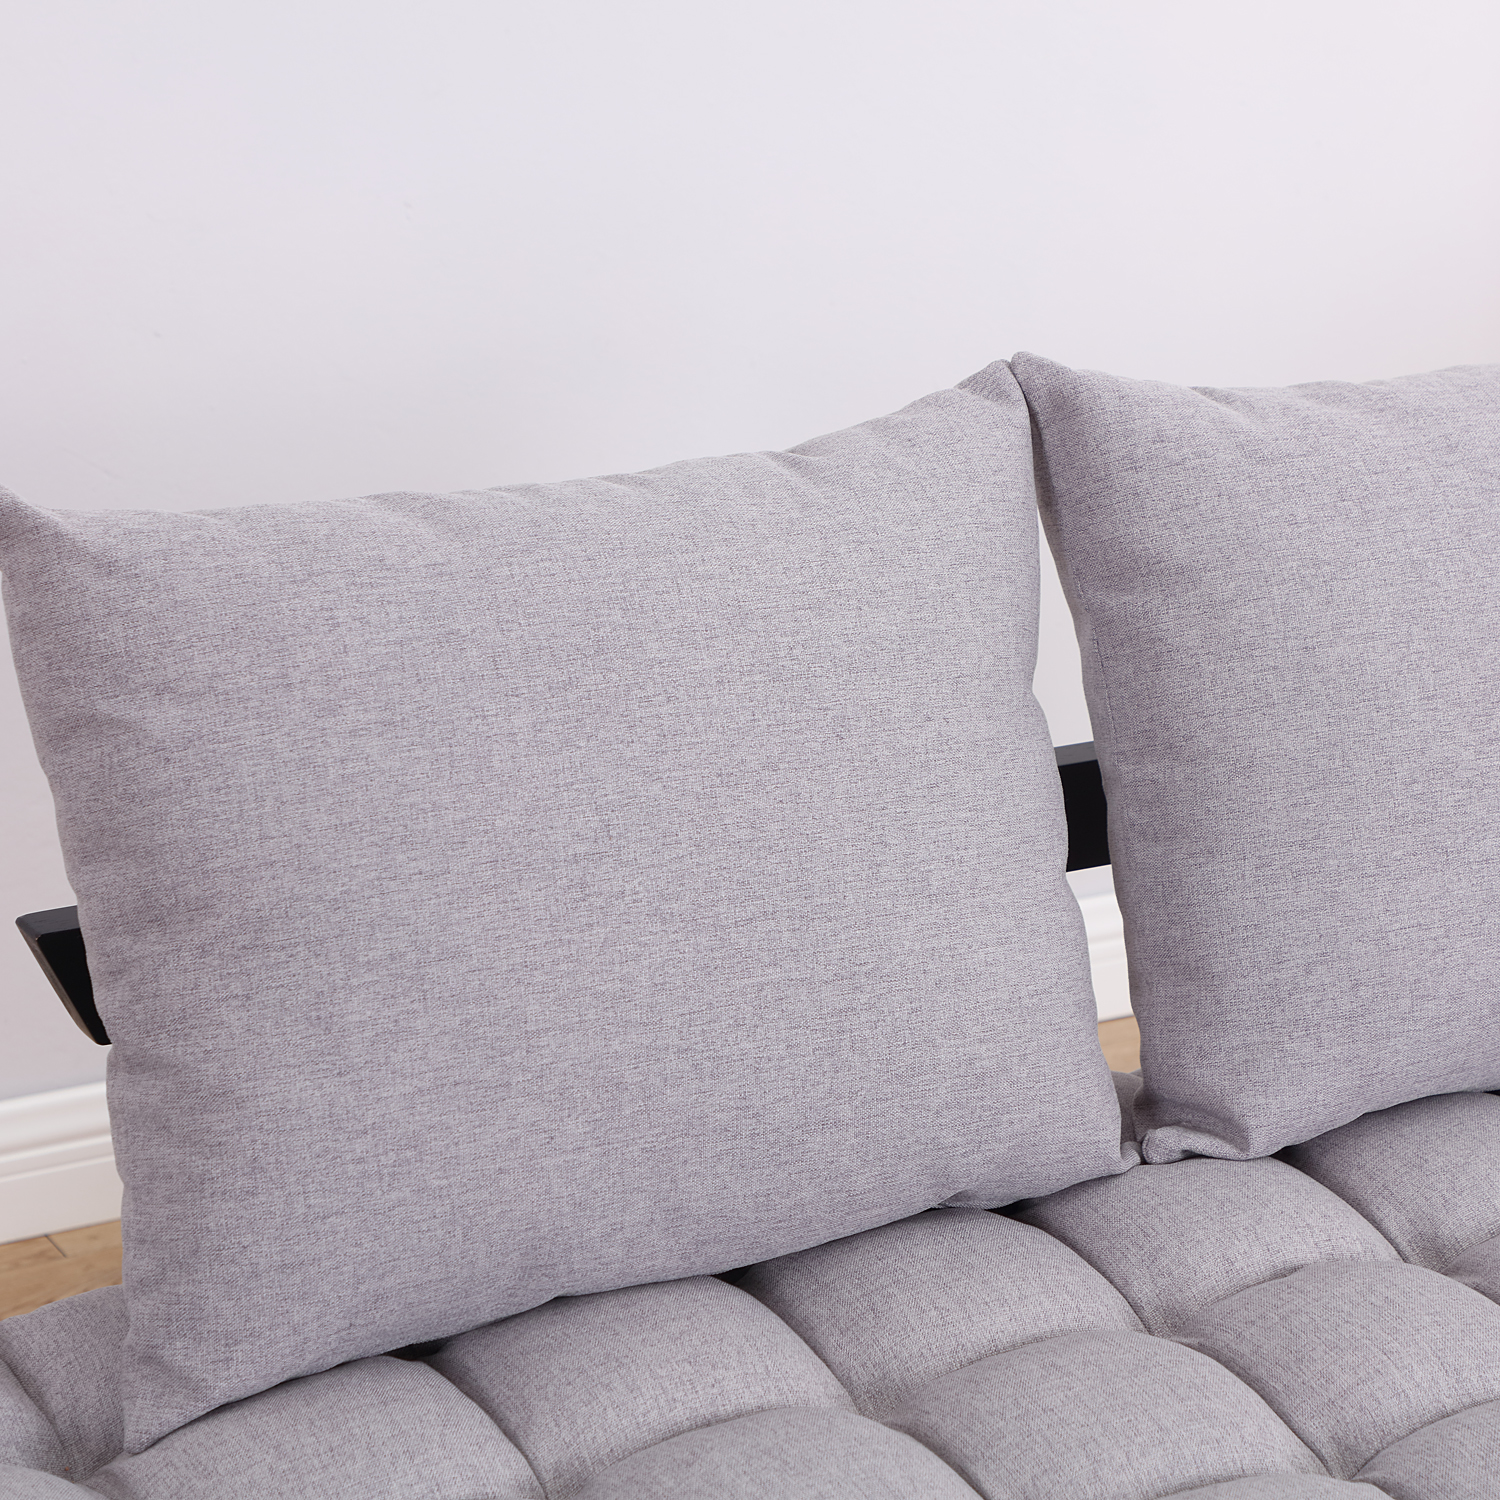 Convertible-Sofa-Bed-Sleeper-Couch-Chaise-Lounge-Chair-Adjustable-Padded-Pillow thumbnail 37